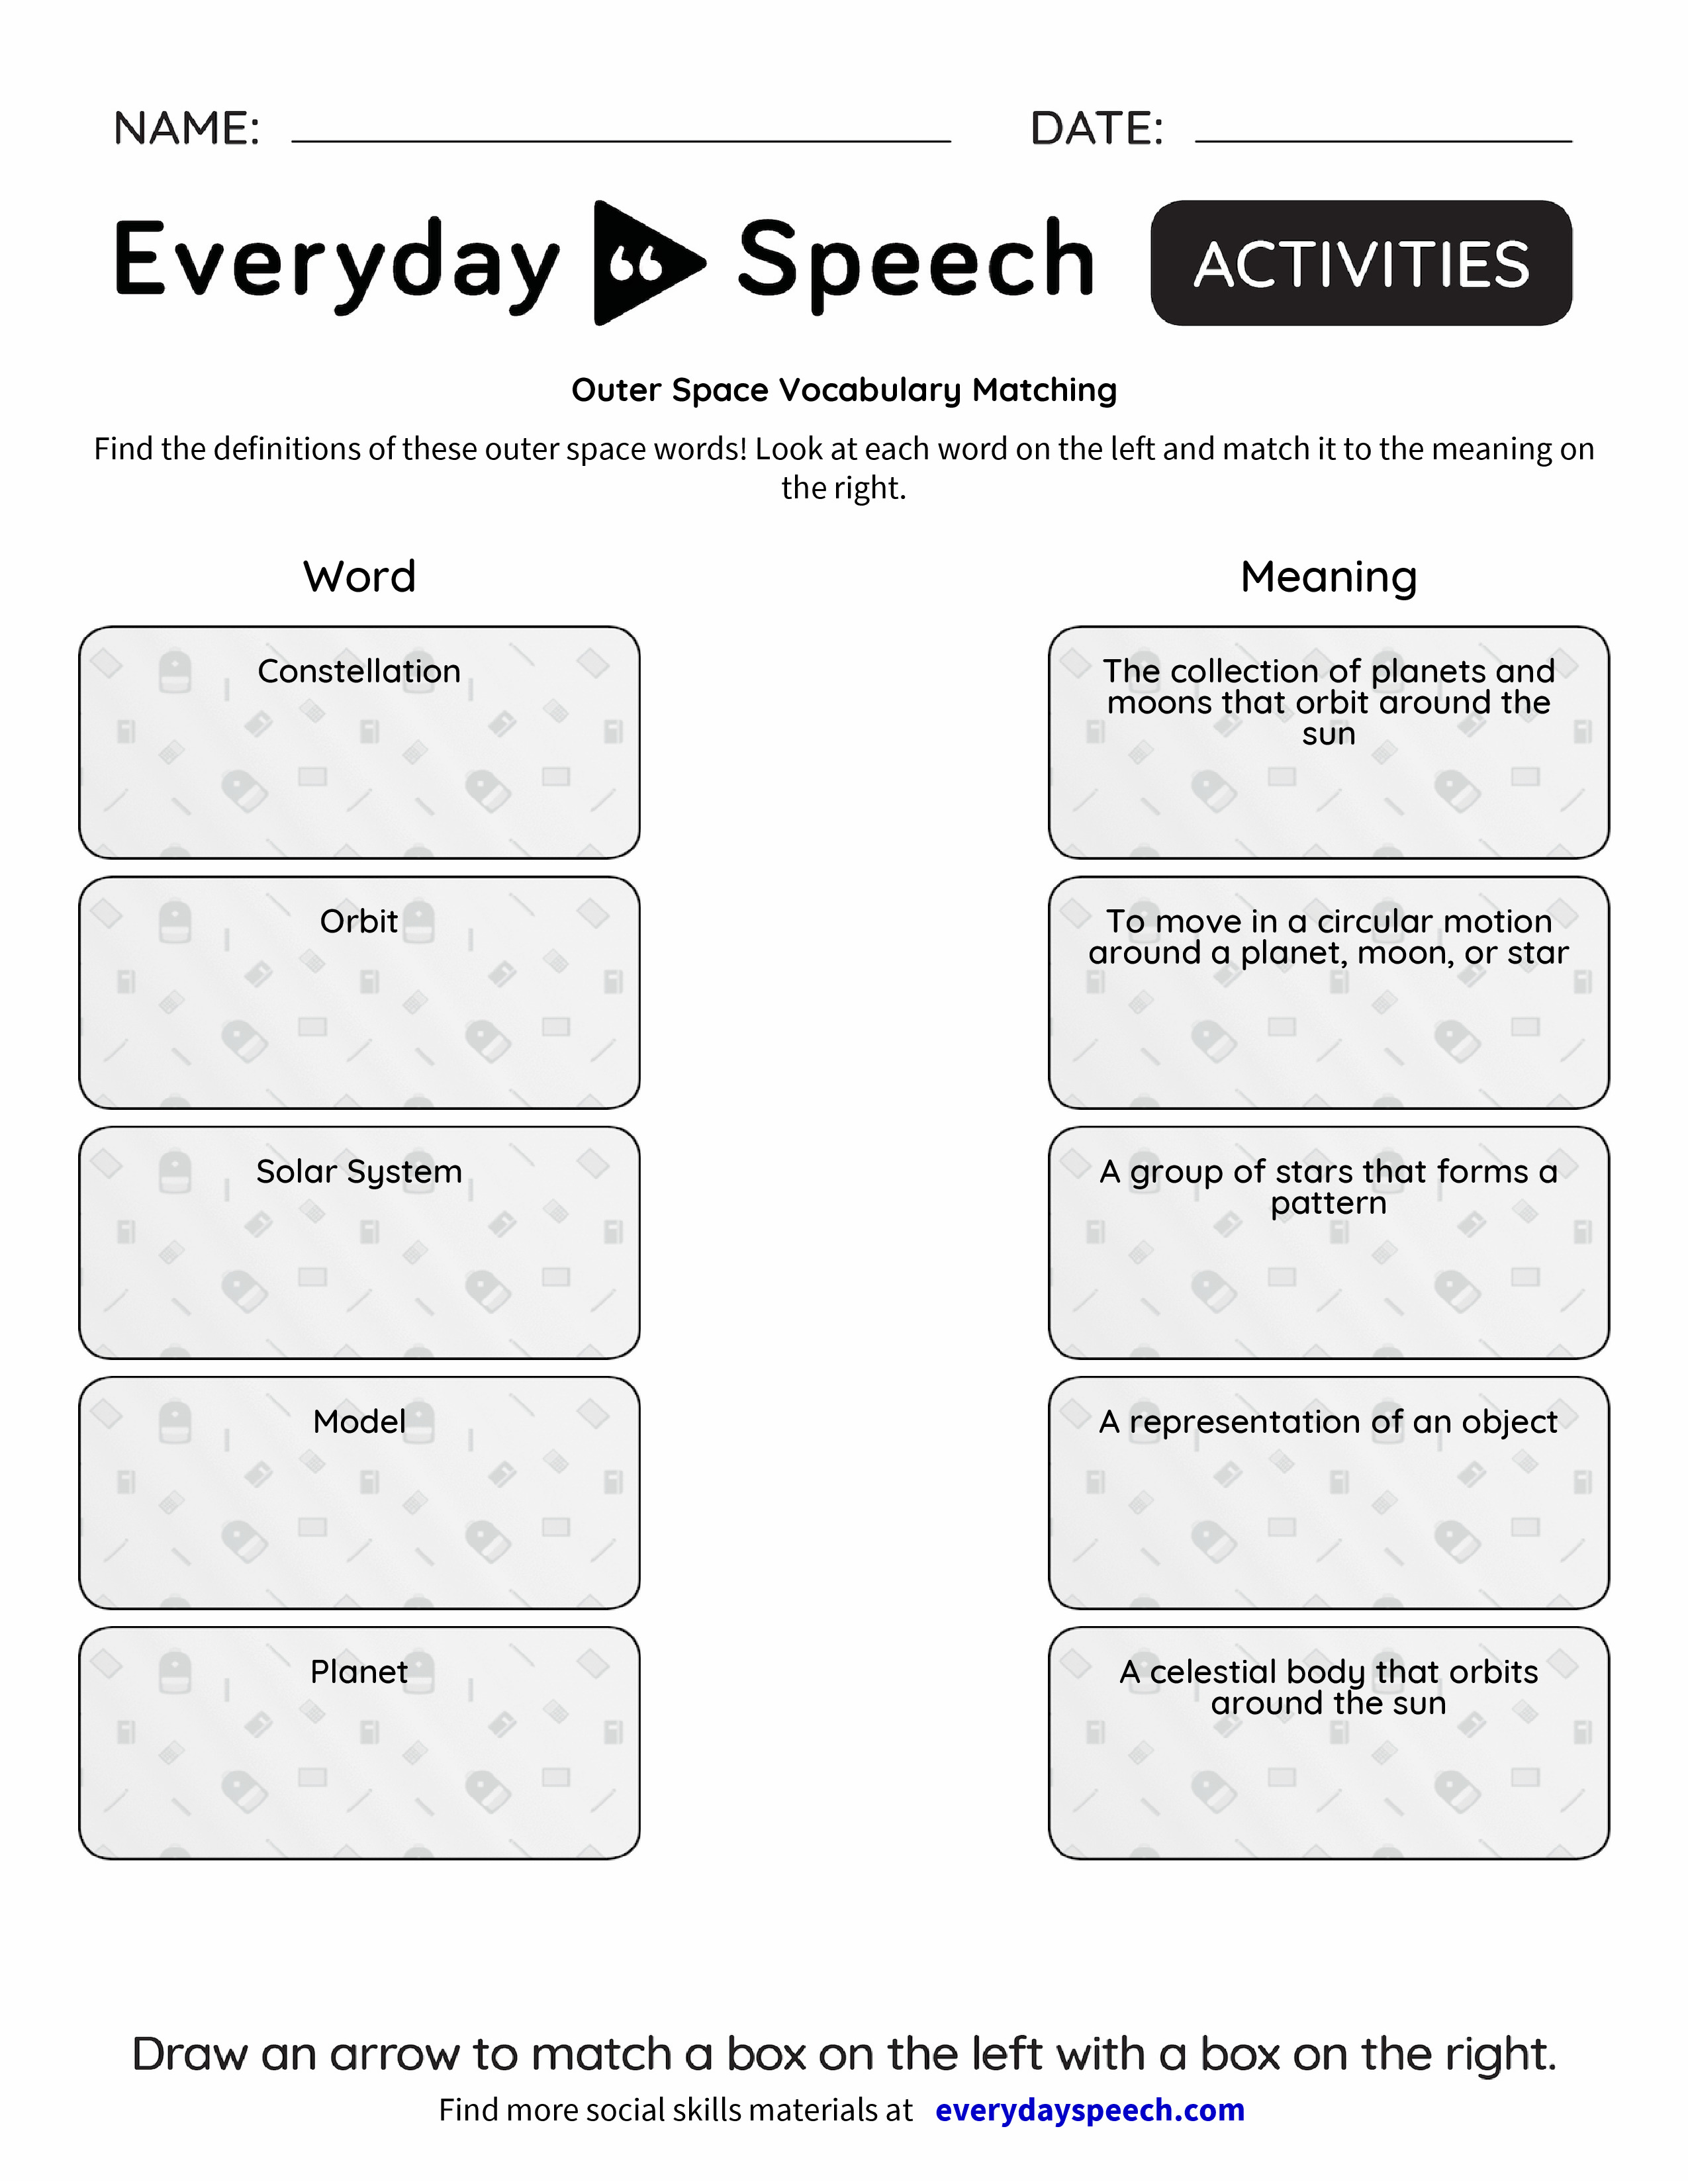 Worksheets Vocabulary Matching Worksheet outer space vocabulary matching everyday speech matching